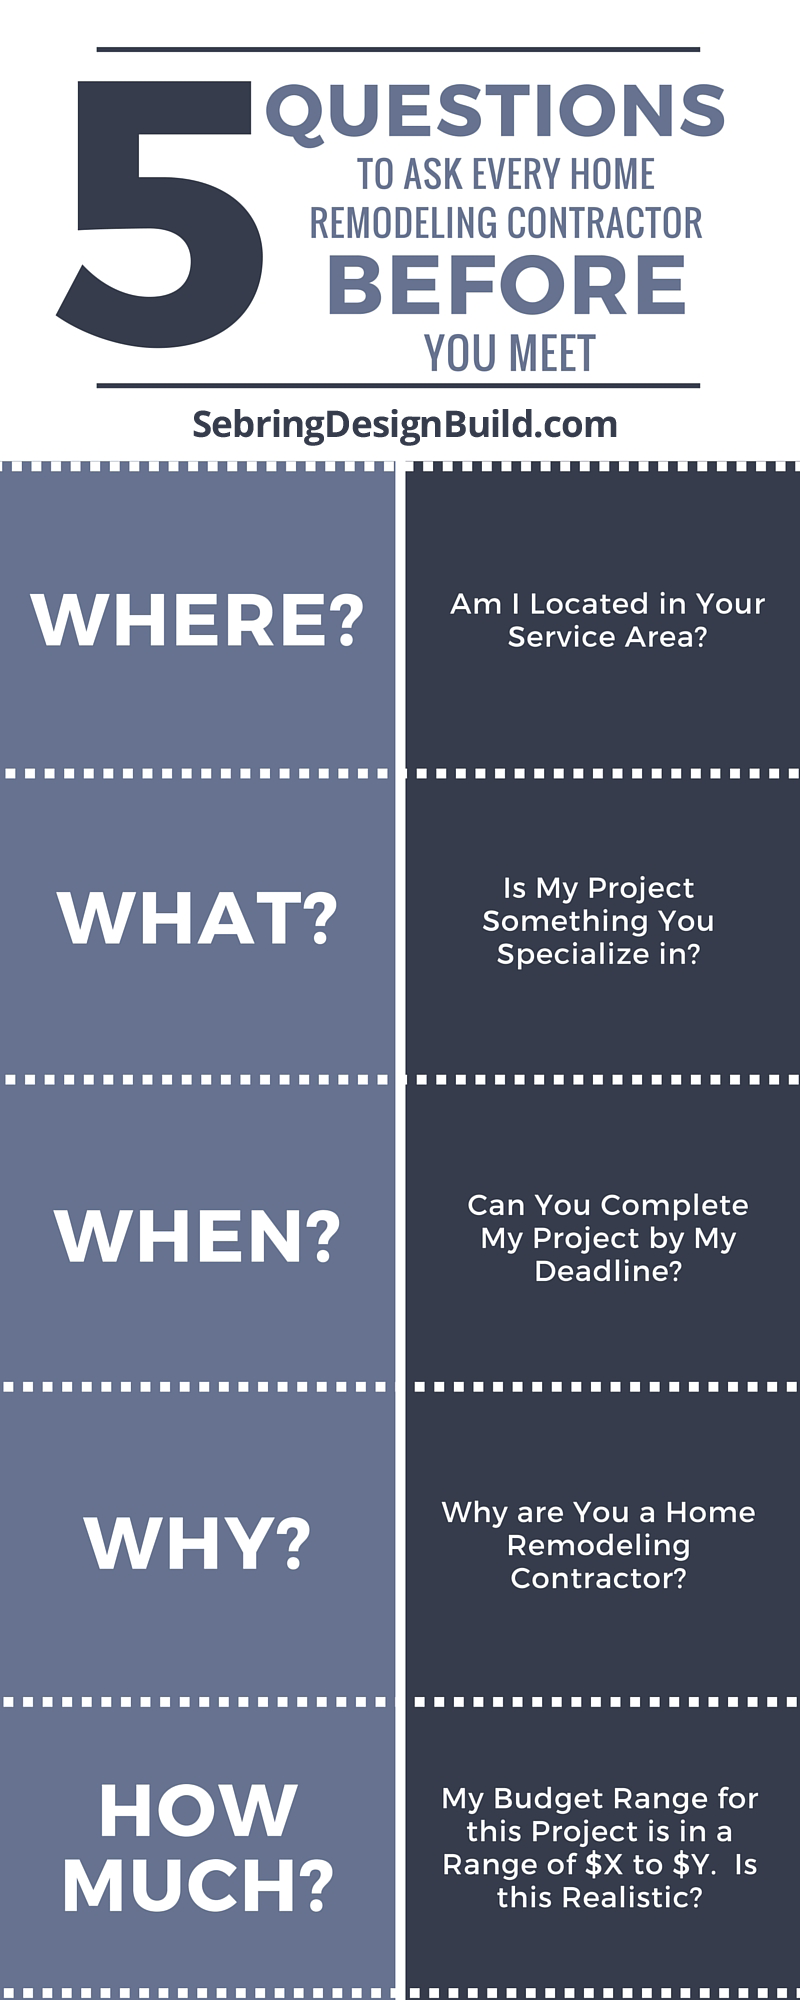 Questions-to-Ask-Every-Home-Remodeling-Contractor